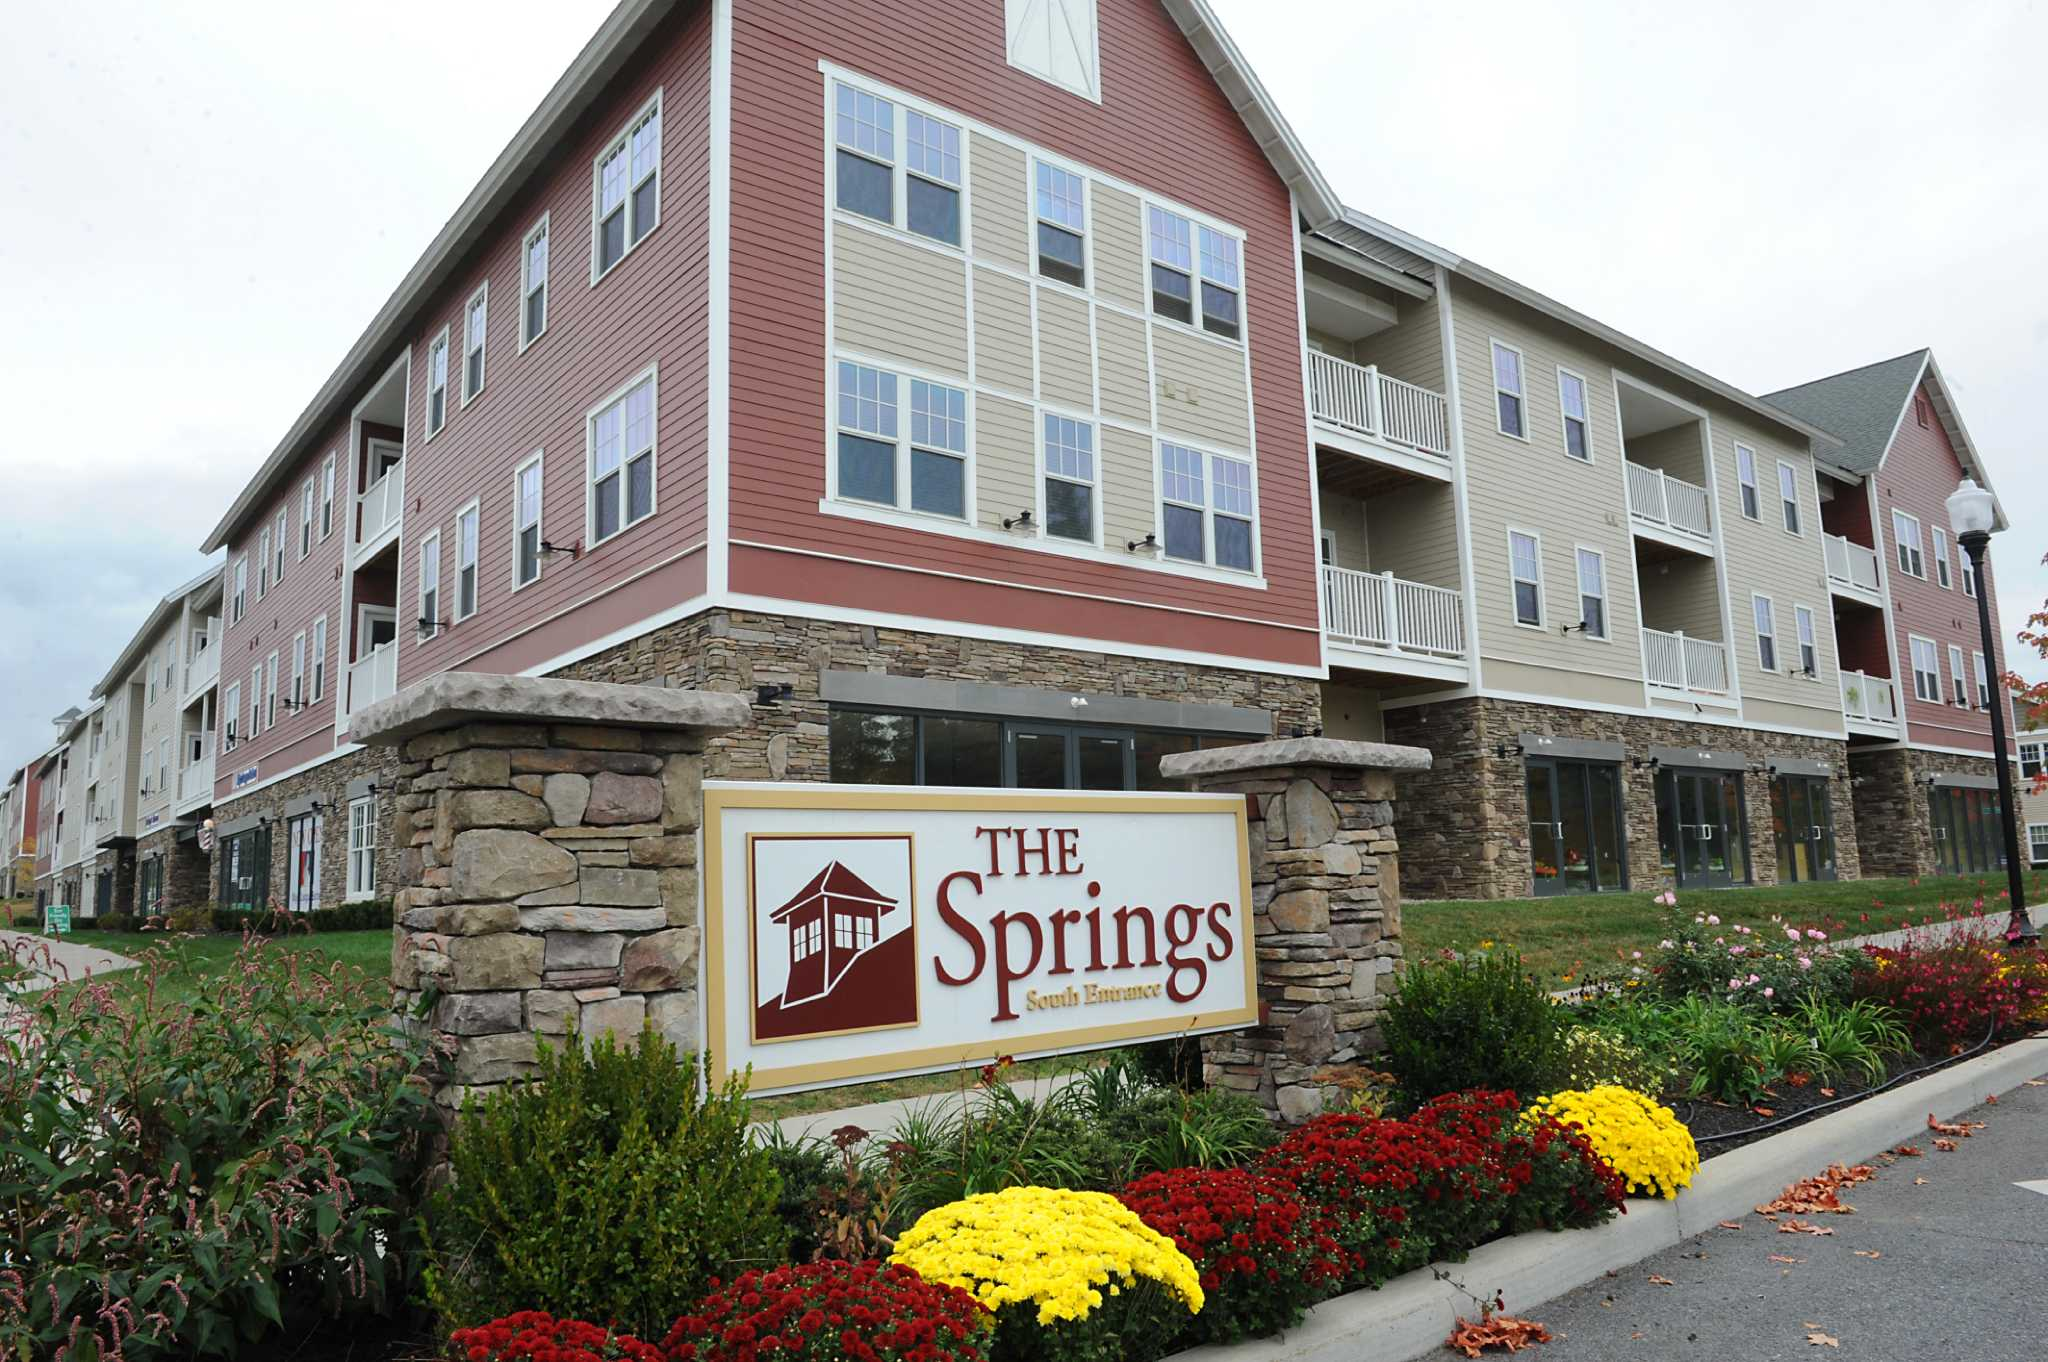 saratoga springs hookup Look here for a wide variety of great lodging options in saratoga springs and throughout saratoga  we have 50 amp full hookup rv sites and sites for travel.